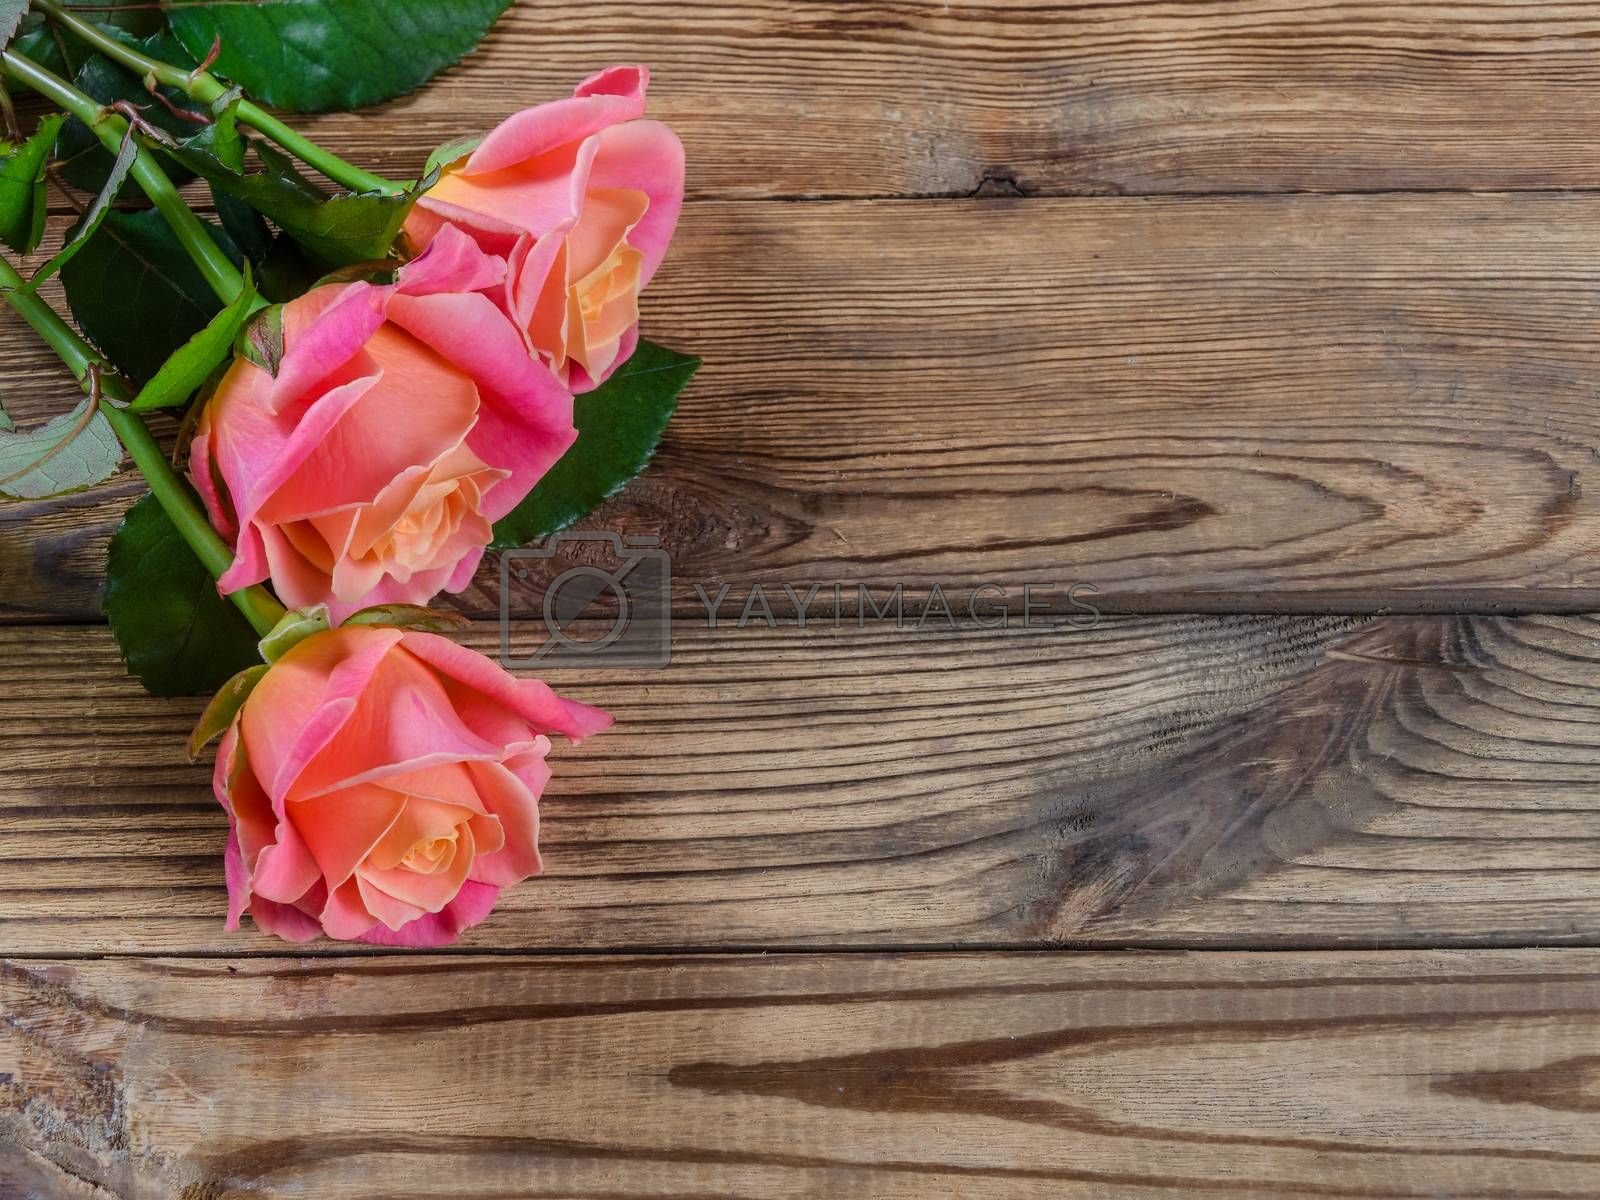 Beautiful roses on wooden table, rustic style